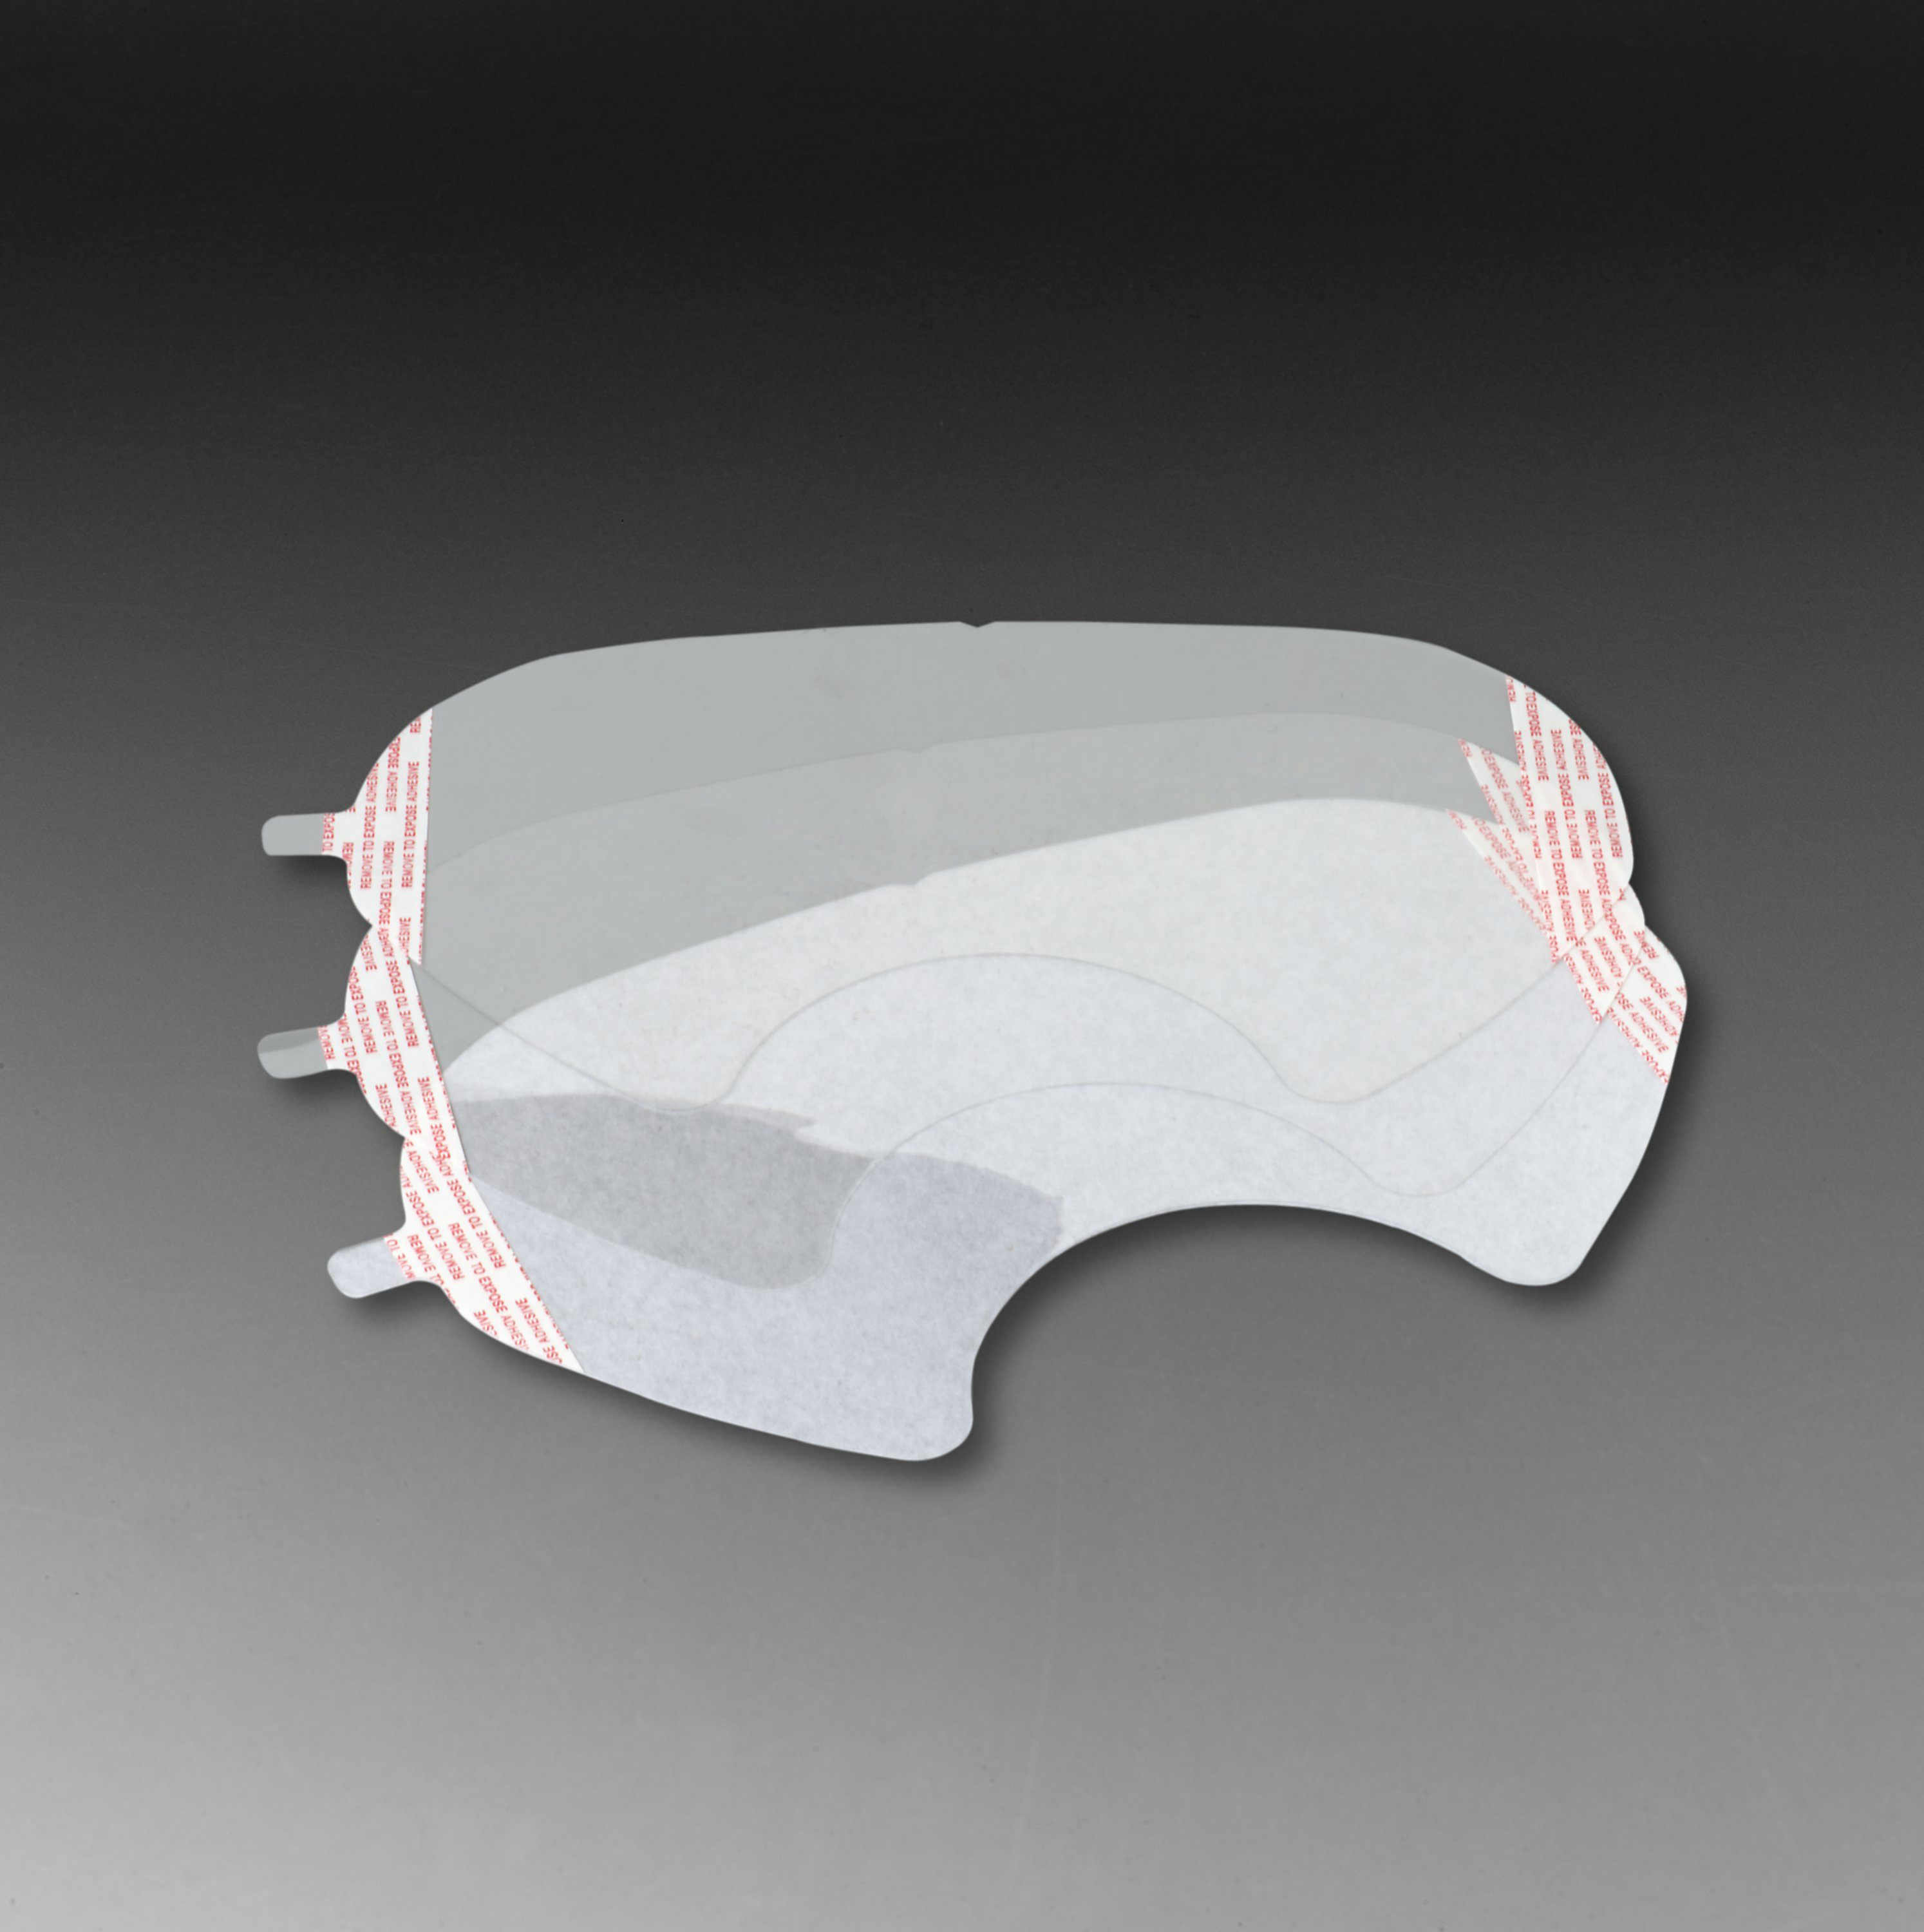 3M™ 051131-07142 Faceshield Cover, For Use With 3M™ 6000 Series Reusable Full Facepieces Respirators, White